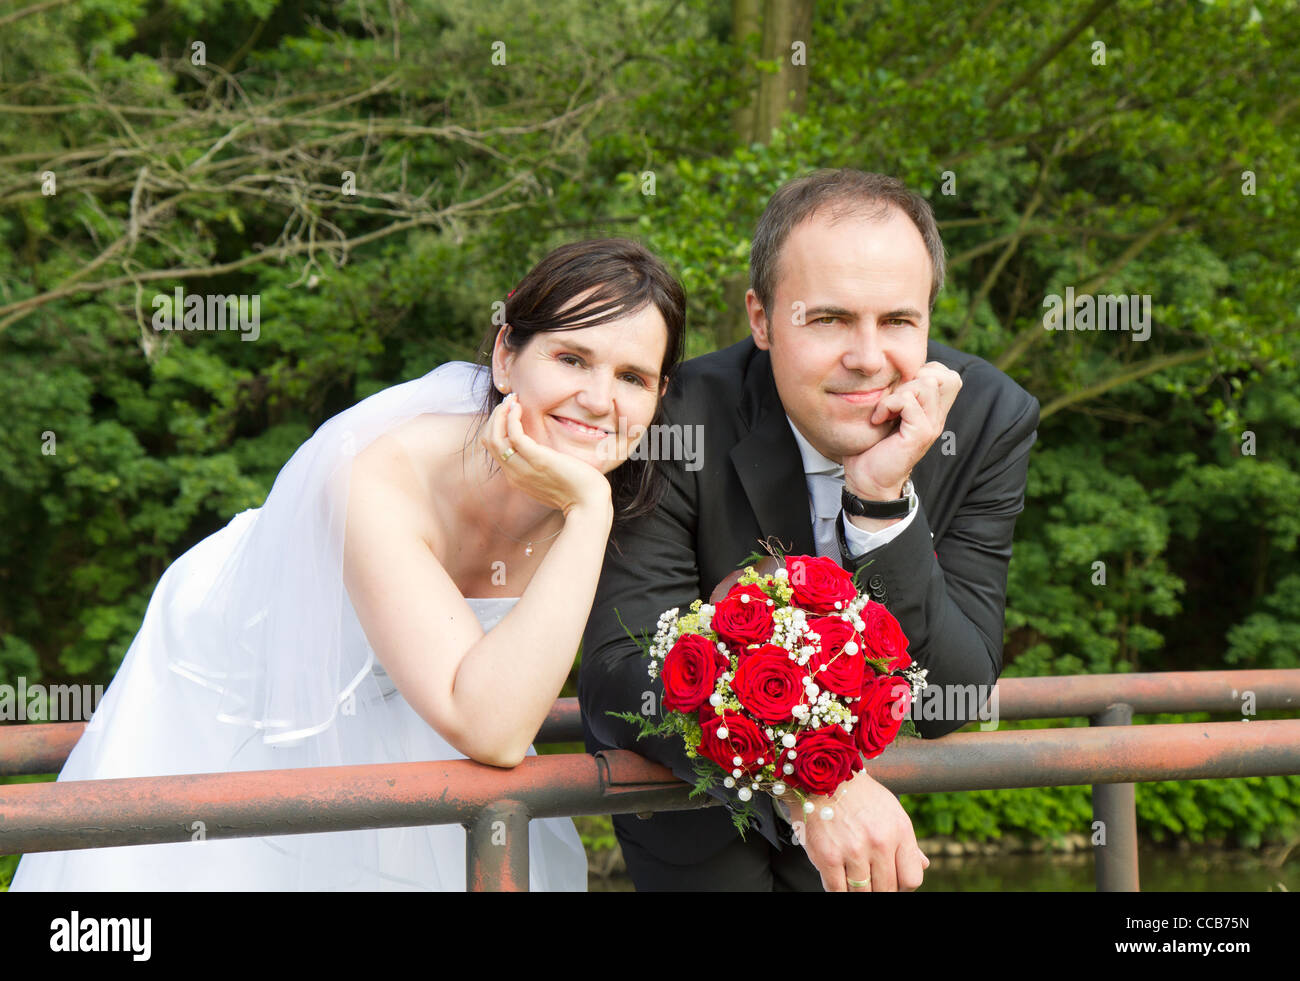 newly wed couple with wedding gown, dark suit and rose bridal bouquet: groom and bride hand in hand proud and happy - Stock Image